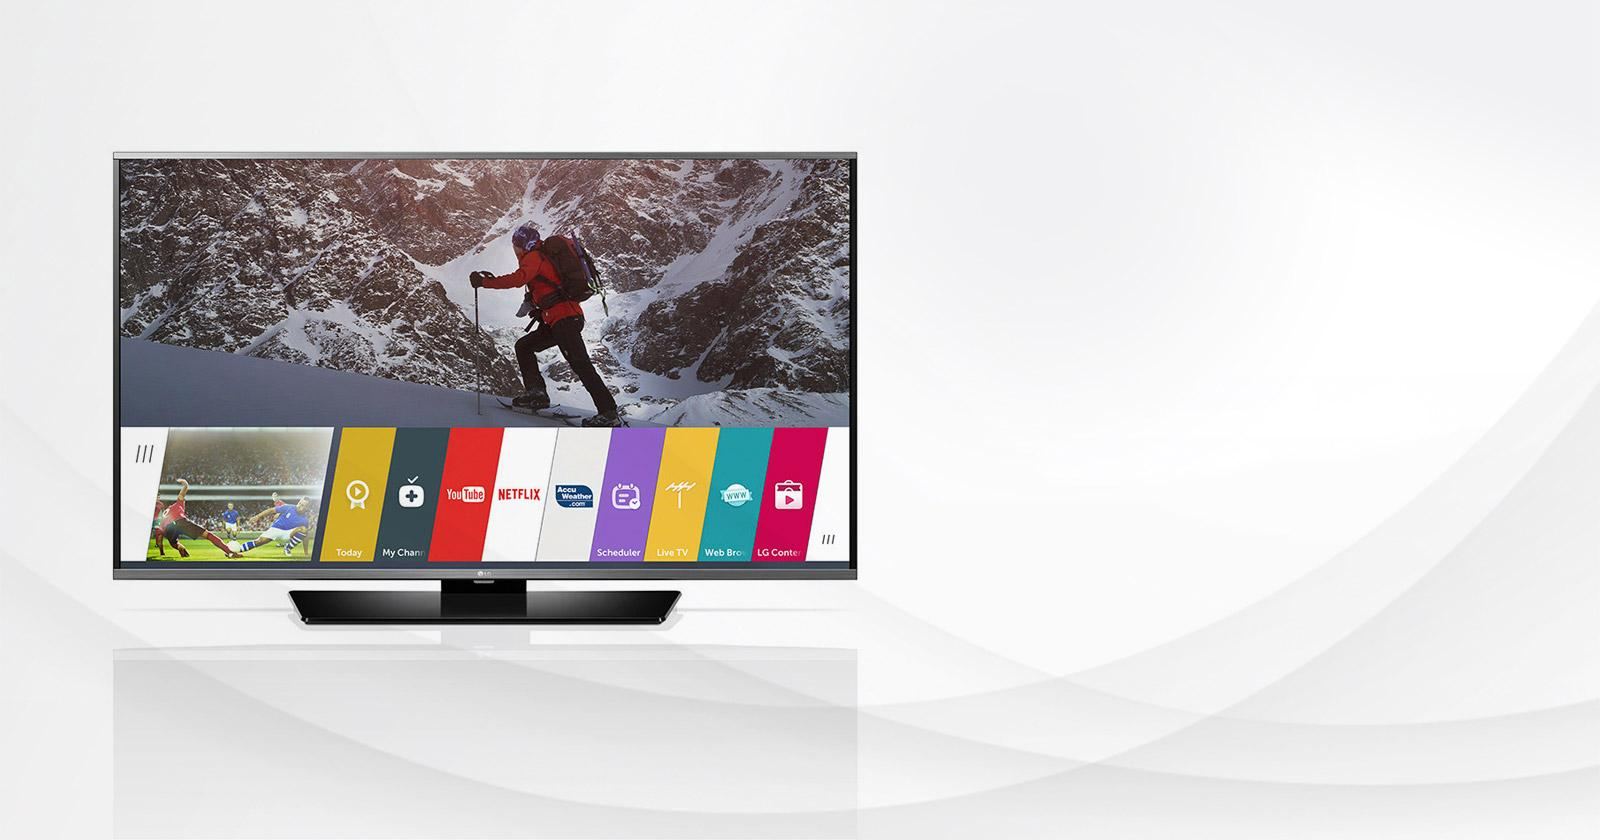 lg smart tv how to use